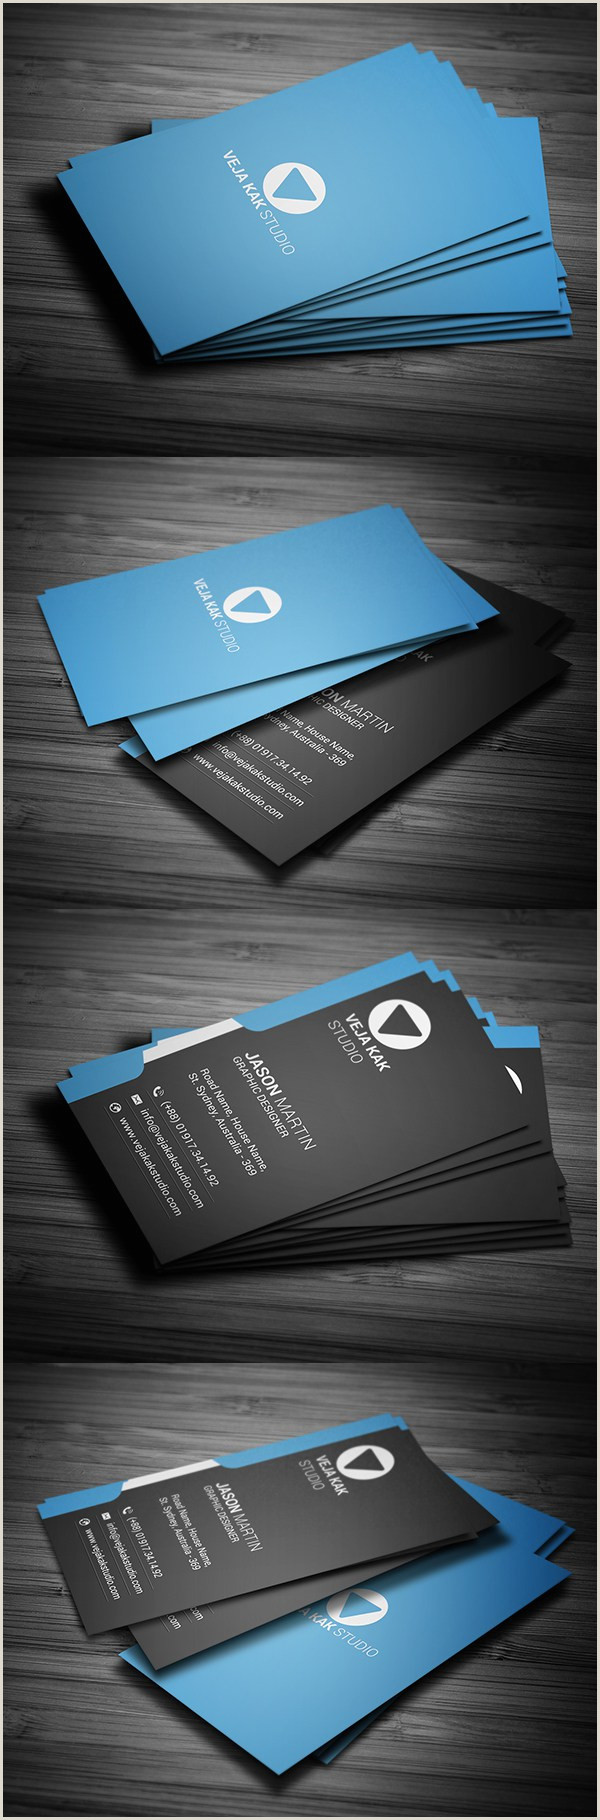 Best Business Cards For Image Modern Vertical Business Card